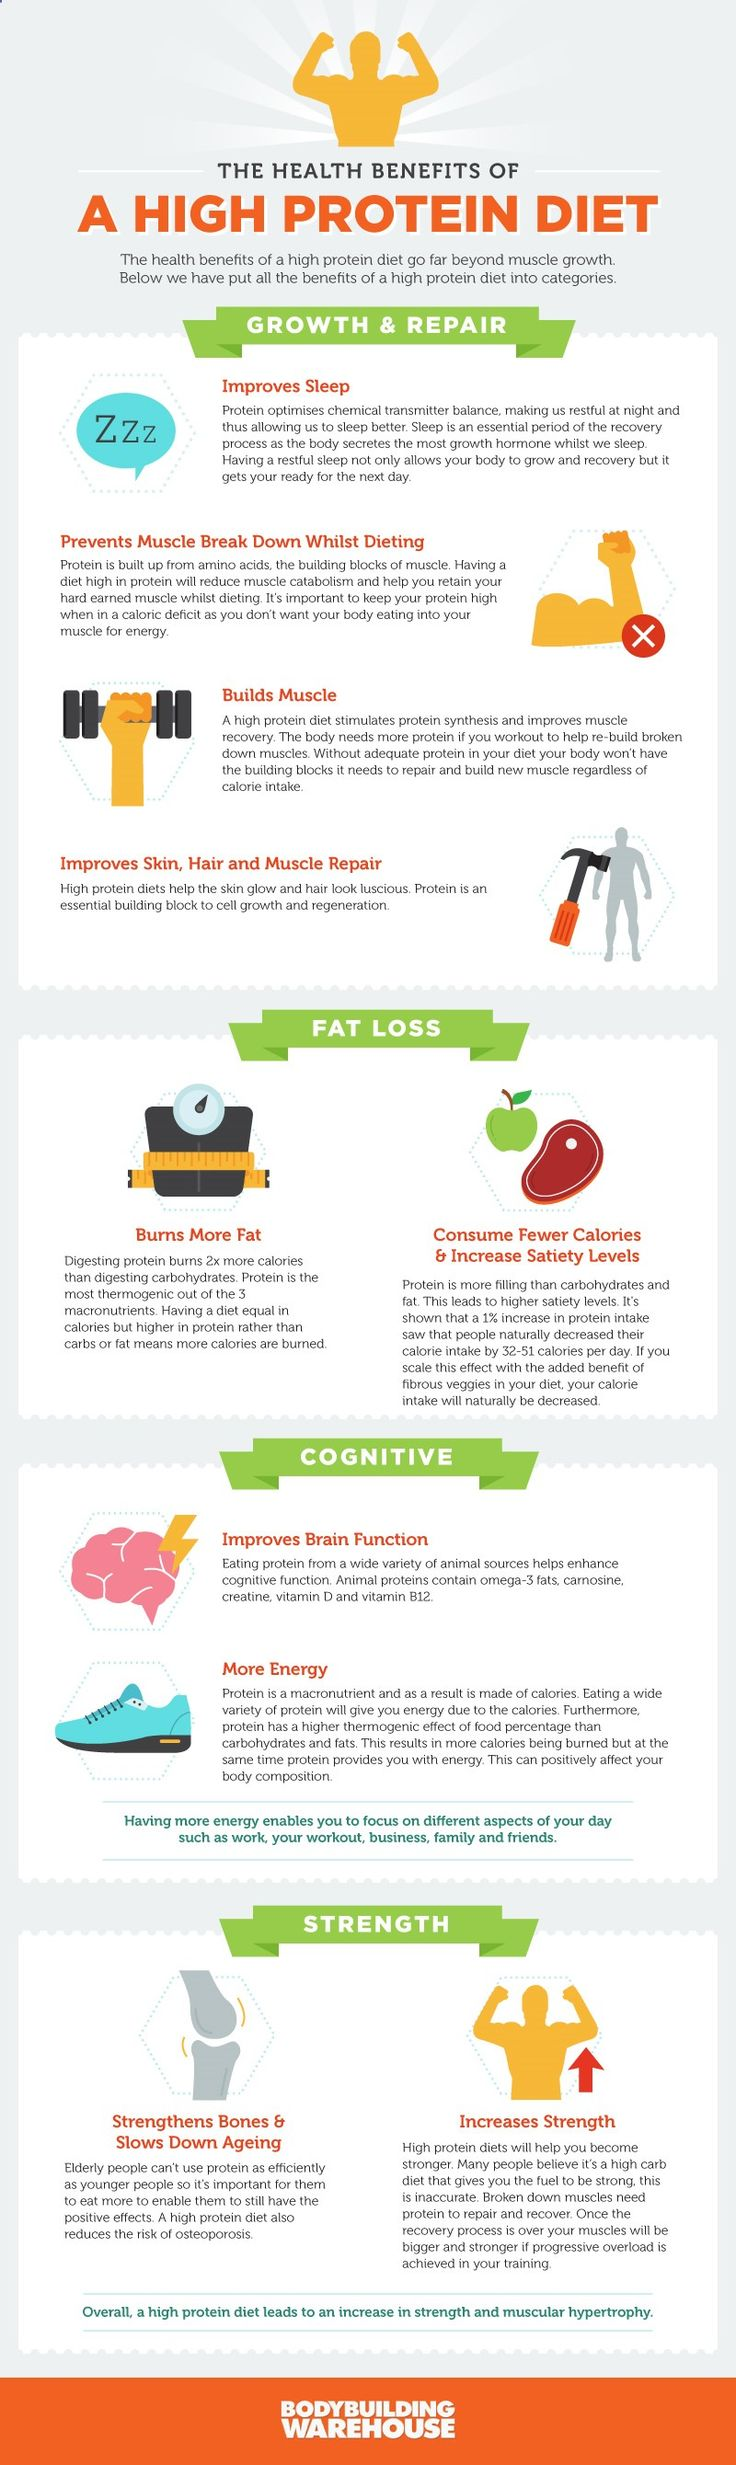 Why Your Body Could Use a Healthy Protein Boost Infographic